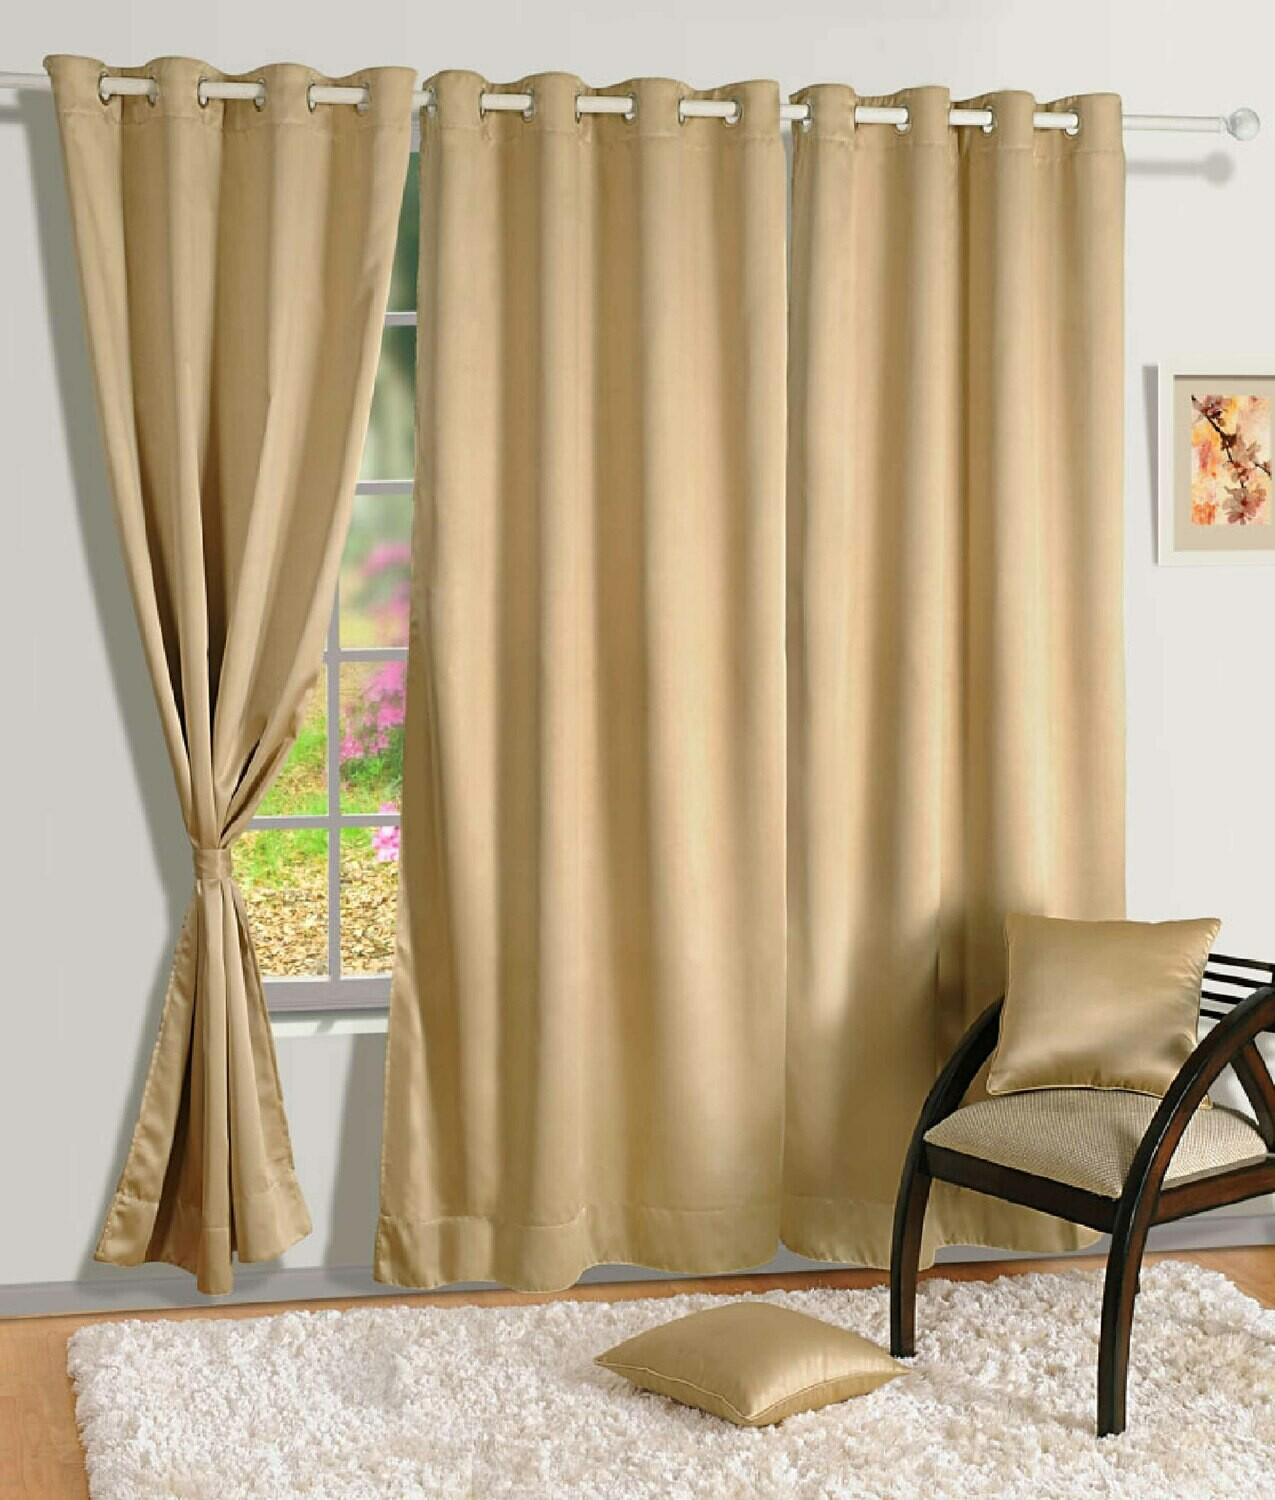 Swayam Beige Colour Solid Blackout Eyelet Curtain for Window